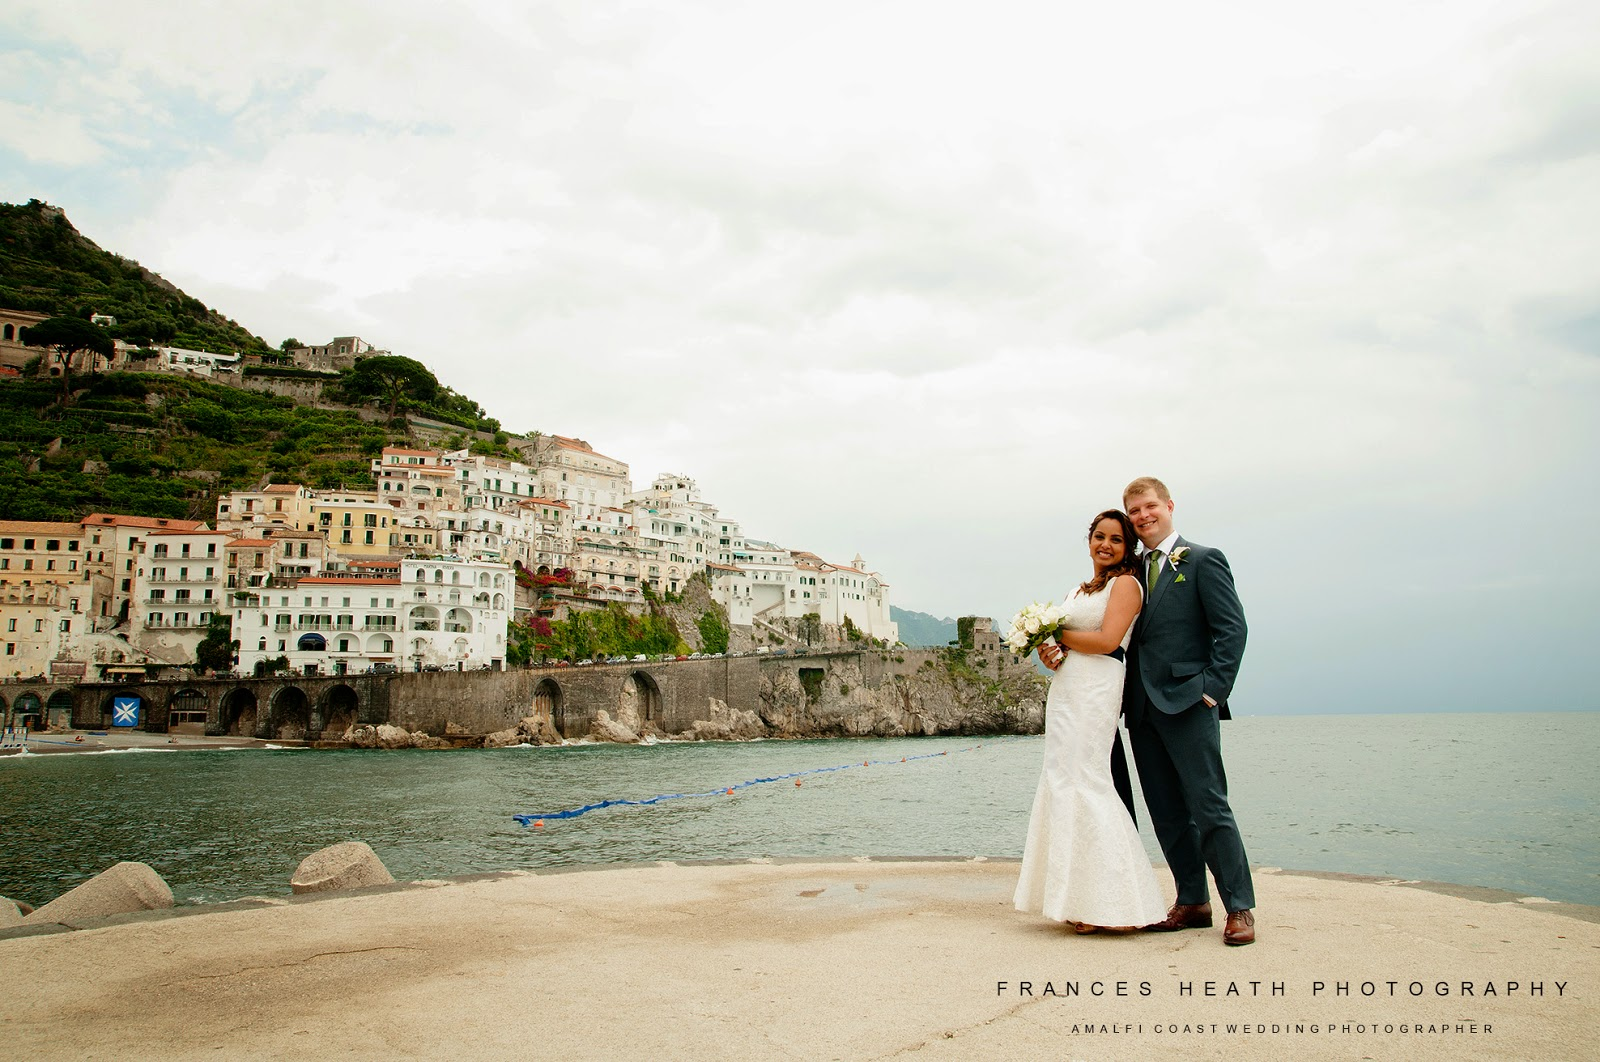 Bride and groom portrait in Amalfi